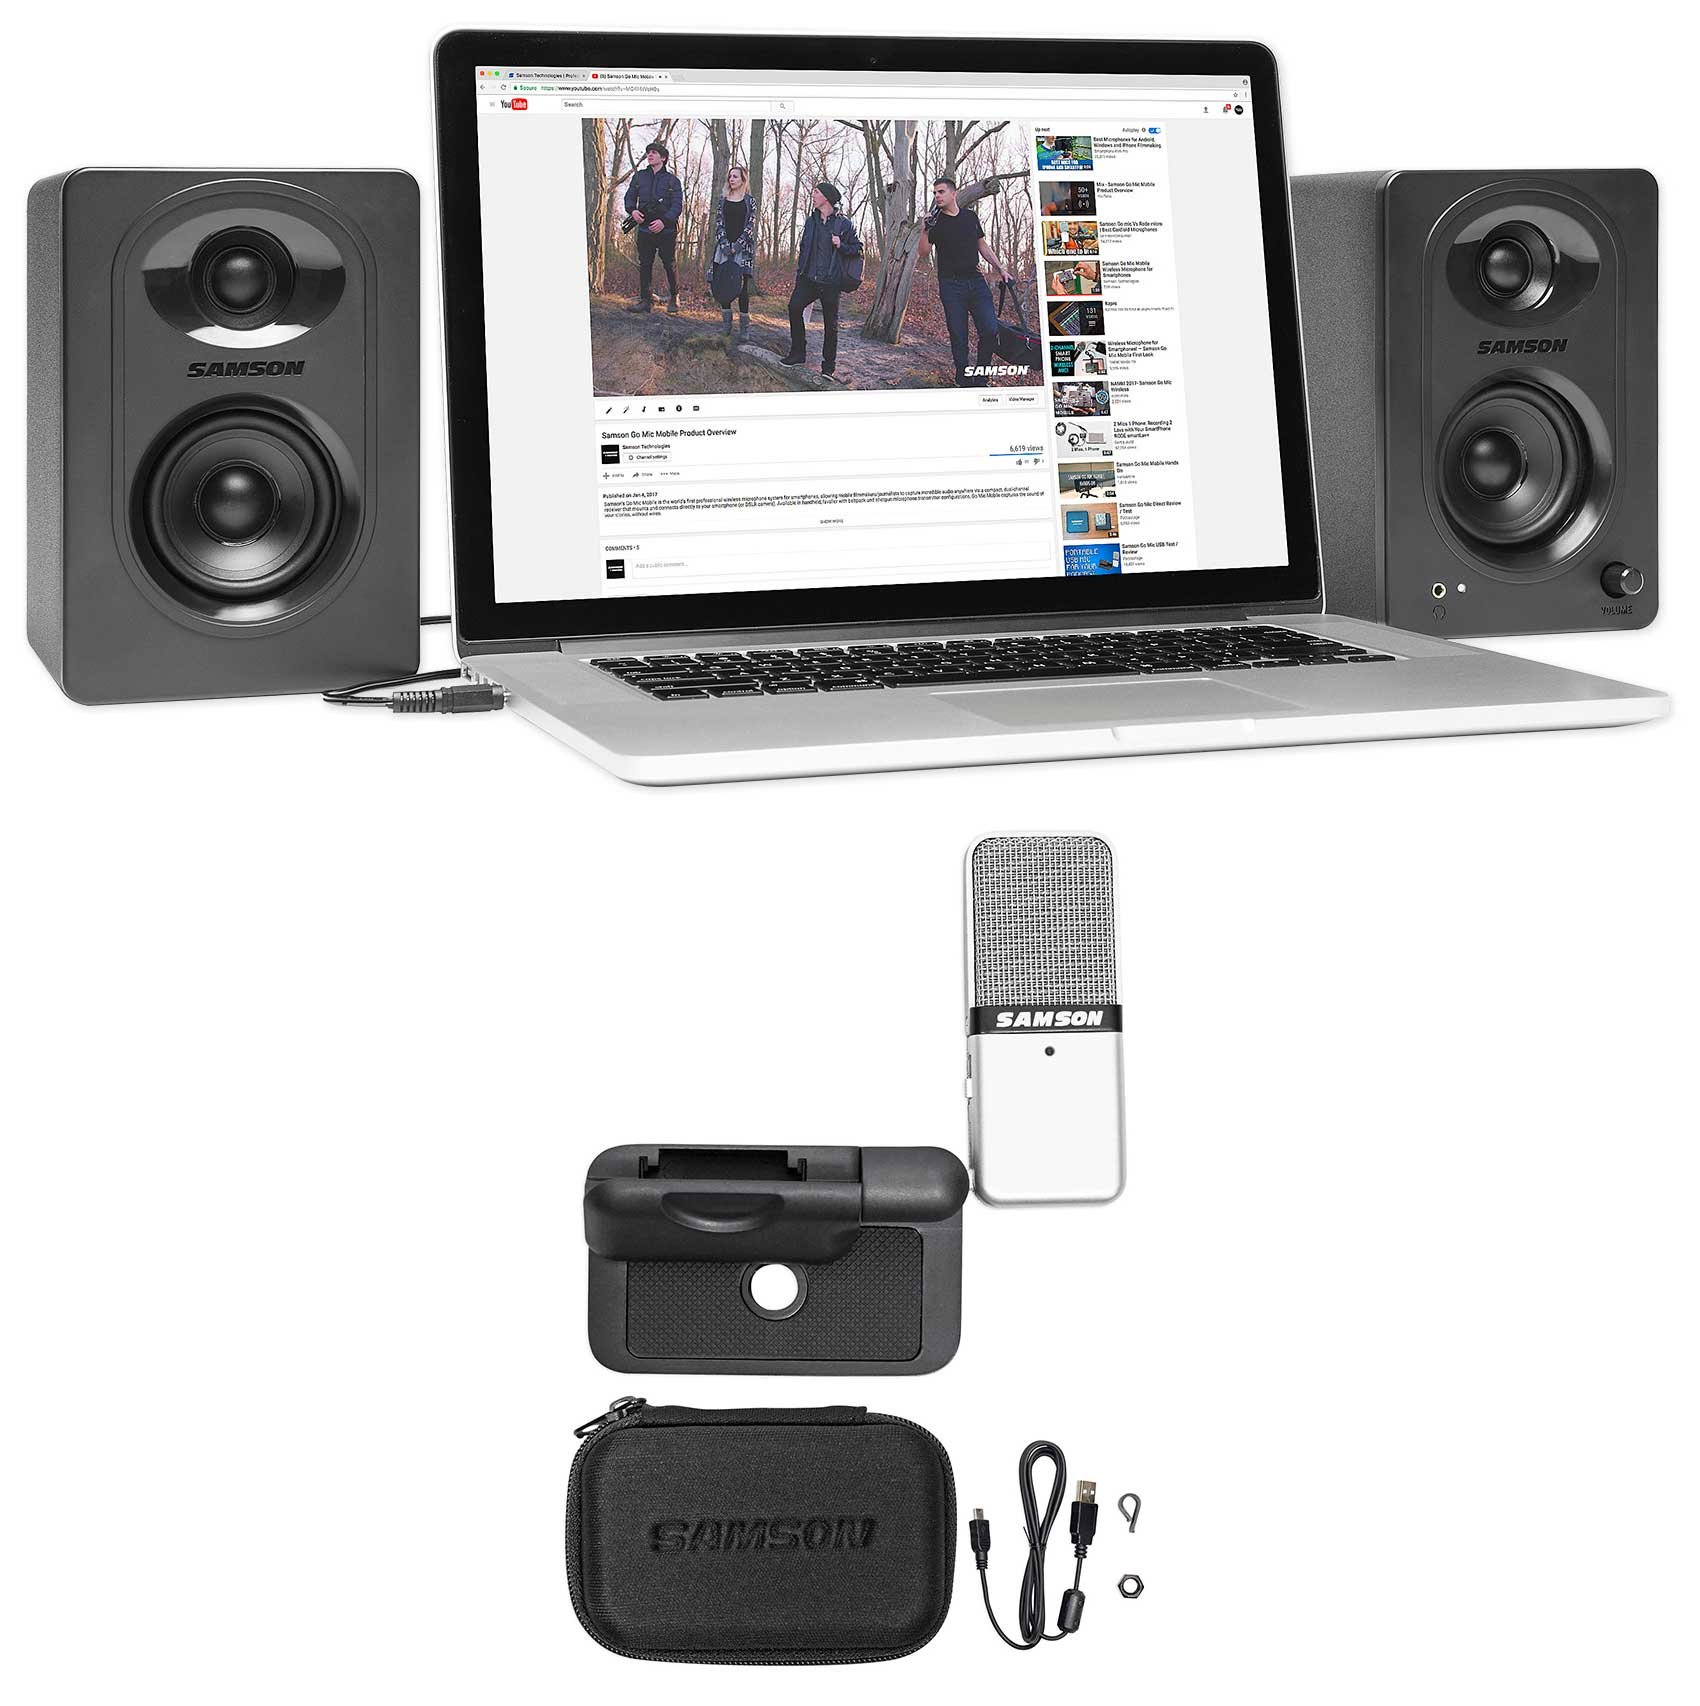 2) SAMSON M30 Powered Studio/Computer/Podcast Monitors Speakers+Microphone by Samson Technologies